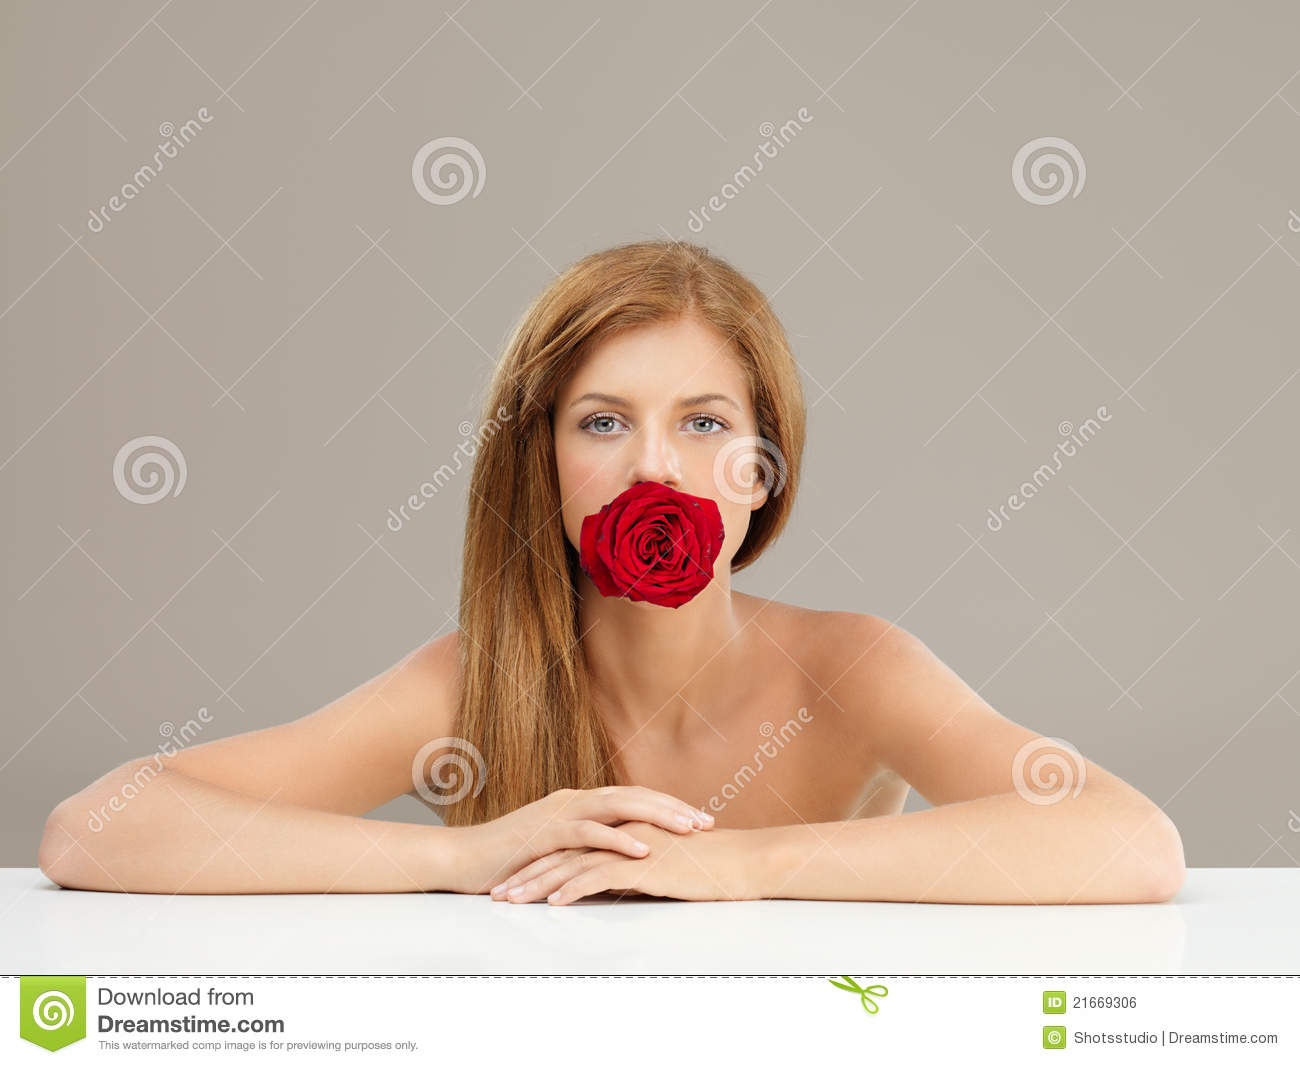 Beautiful Girl Holding Fashion Beauty Magazine Stock Image: Beautiful Woman Holding Red Rose In Mouth Stock Photo